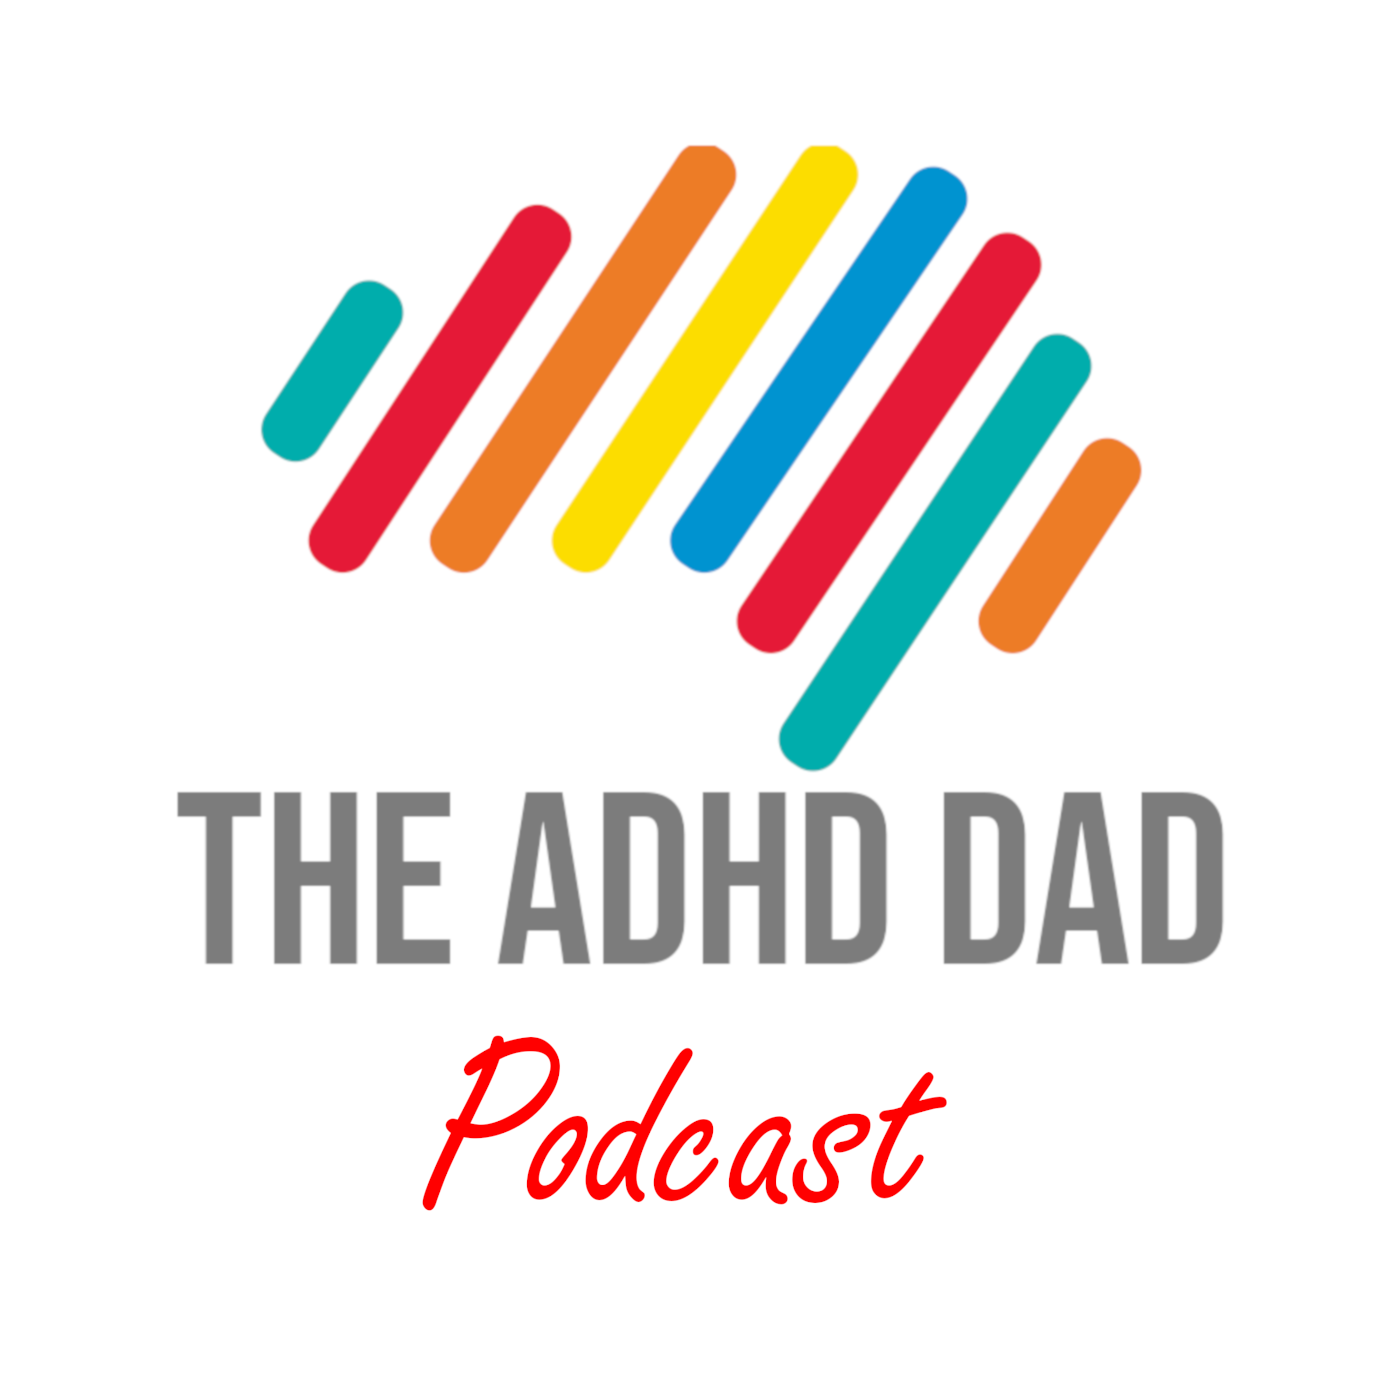 The ADHD Dad Podcast